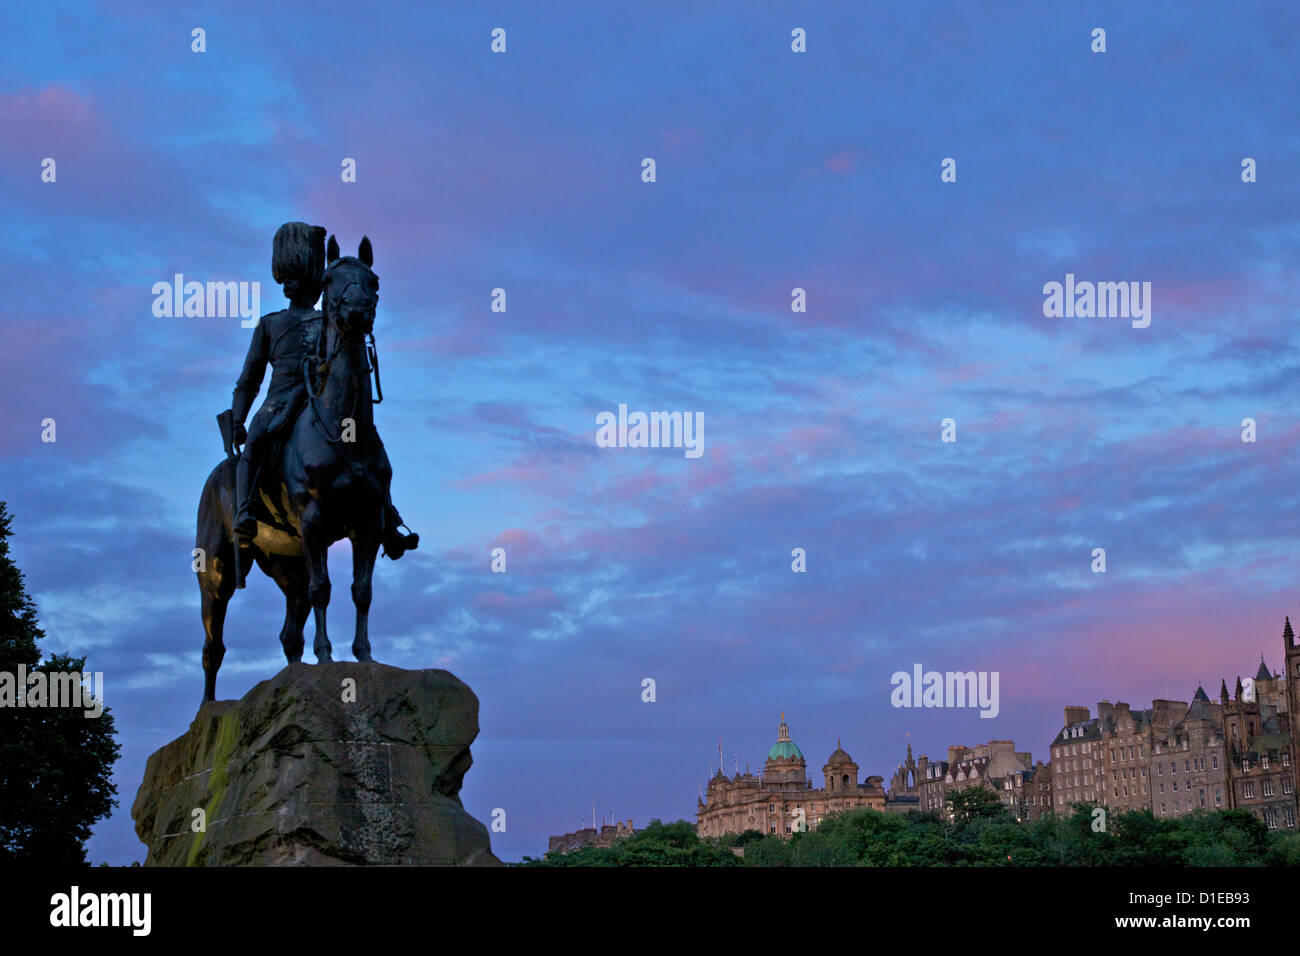 Royal Scots Greys Boer War memorial equestrian statue Princes Street, with the Royal Mile behind, Edinburgh, Scotland - Stock Image